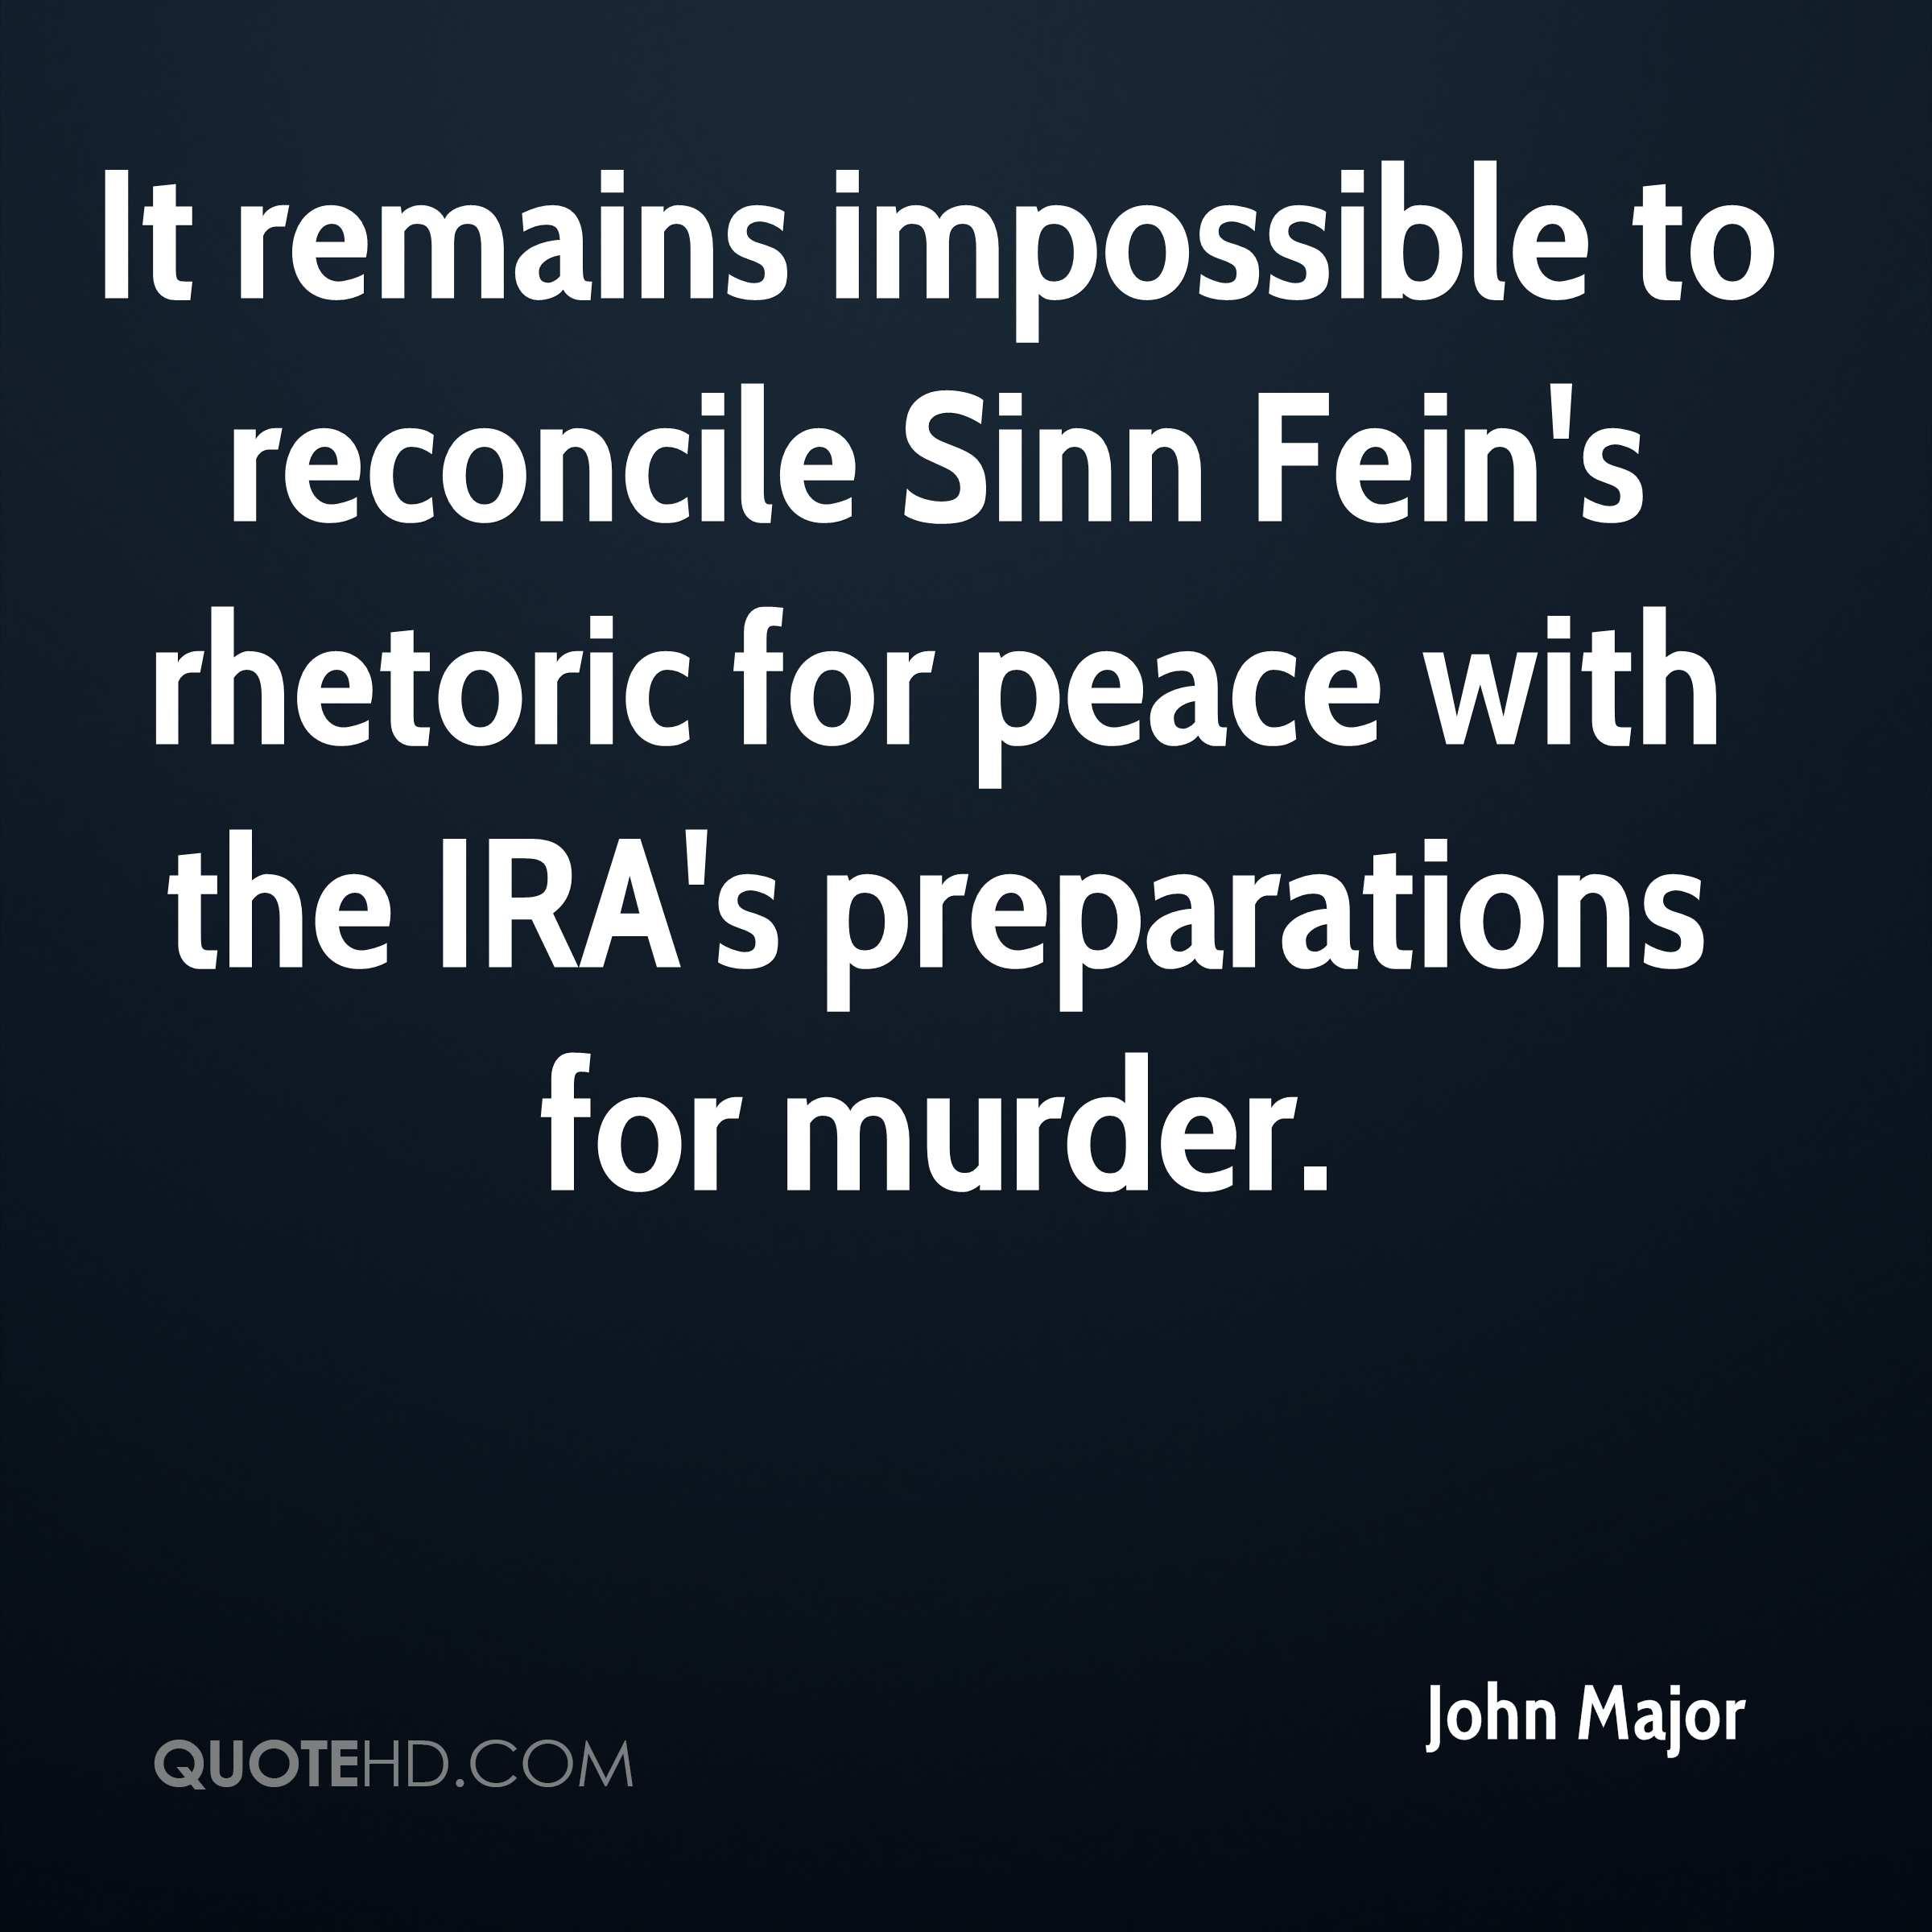 It remains impossible to reconcile Sinn Fein's rhetoric for peace with the IRA's preparations for murder.